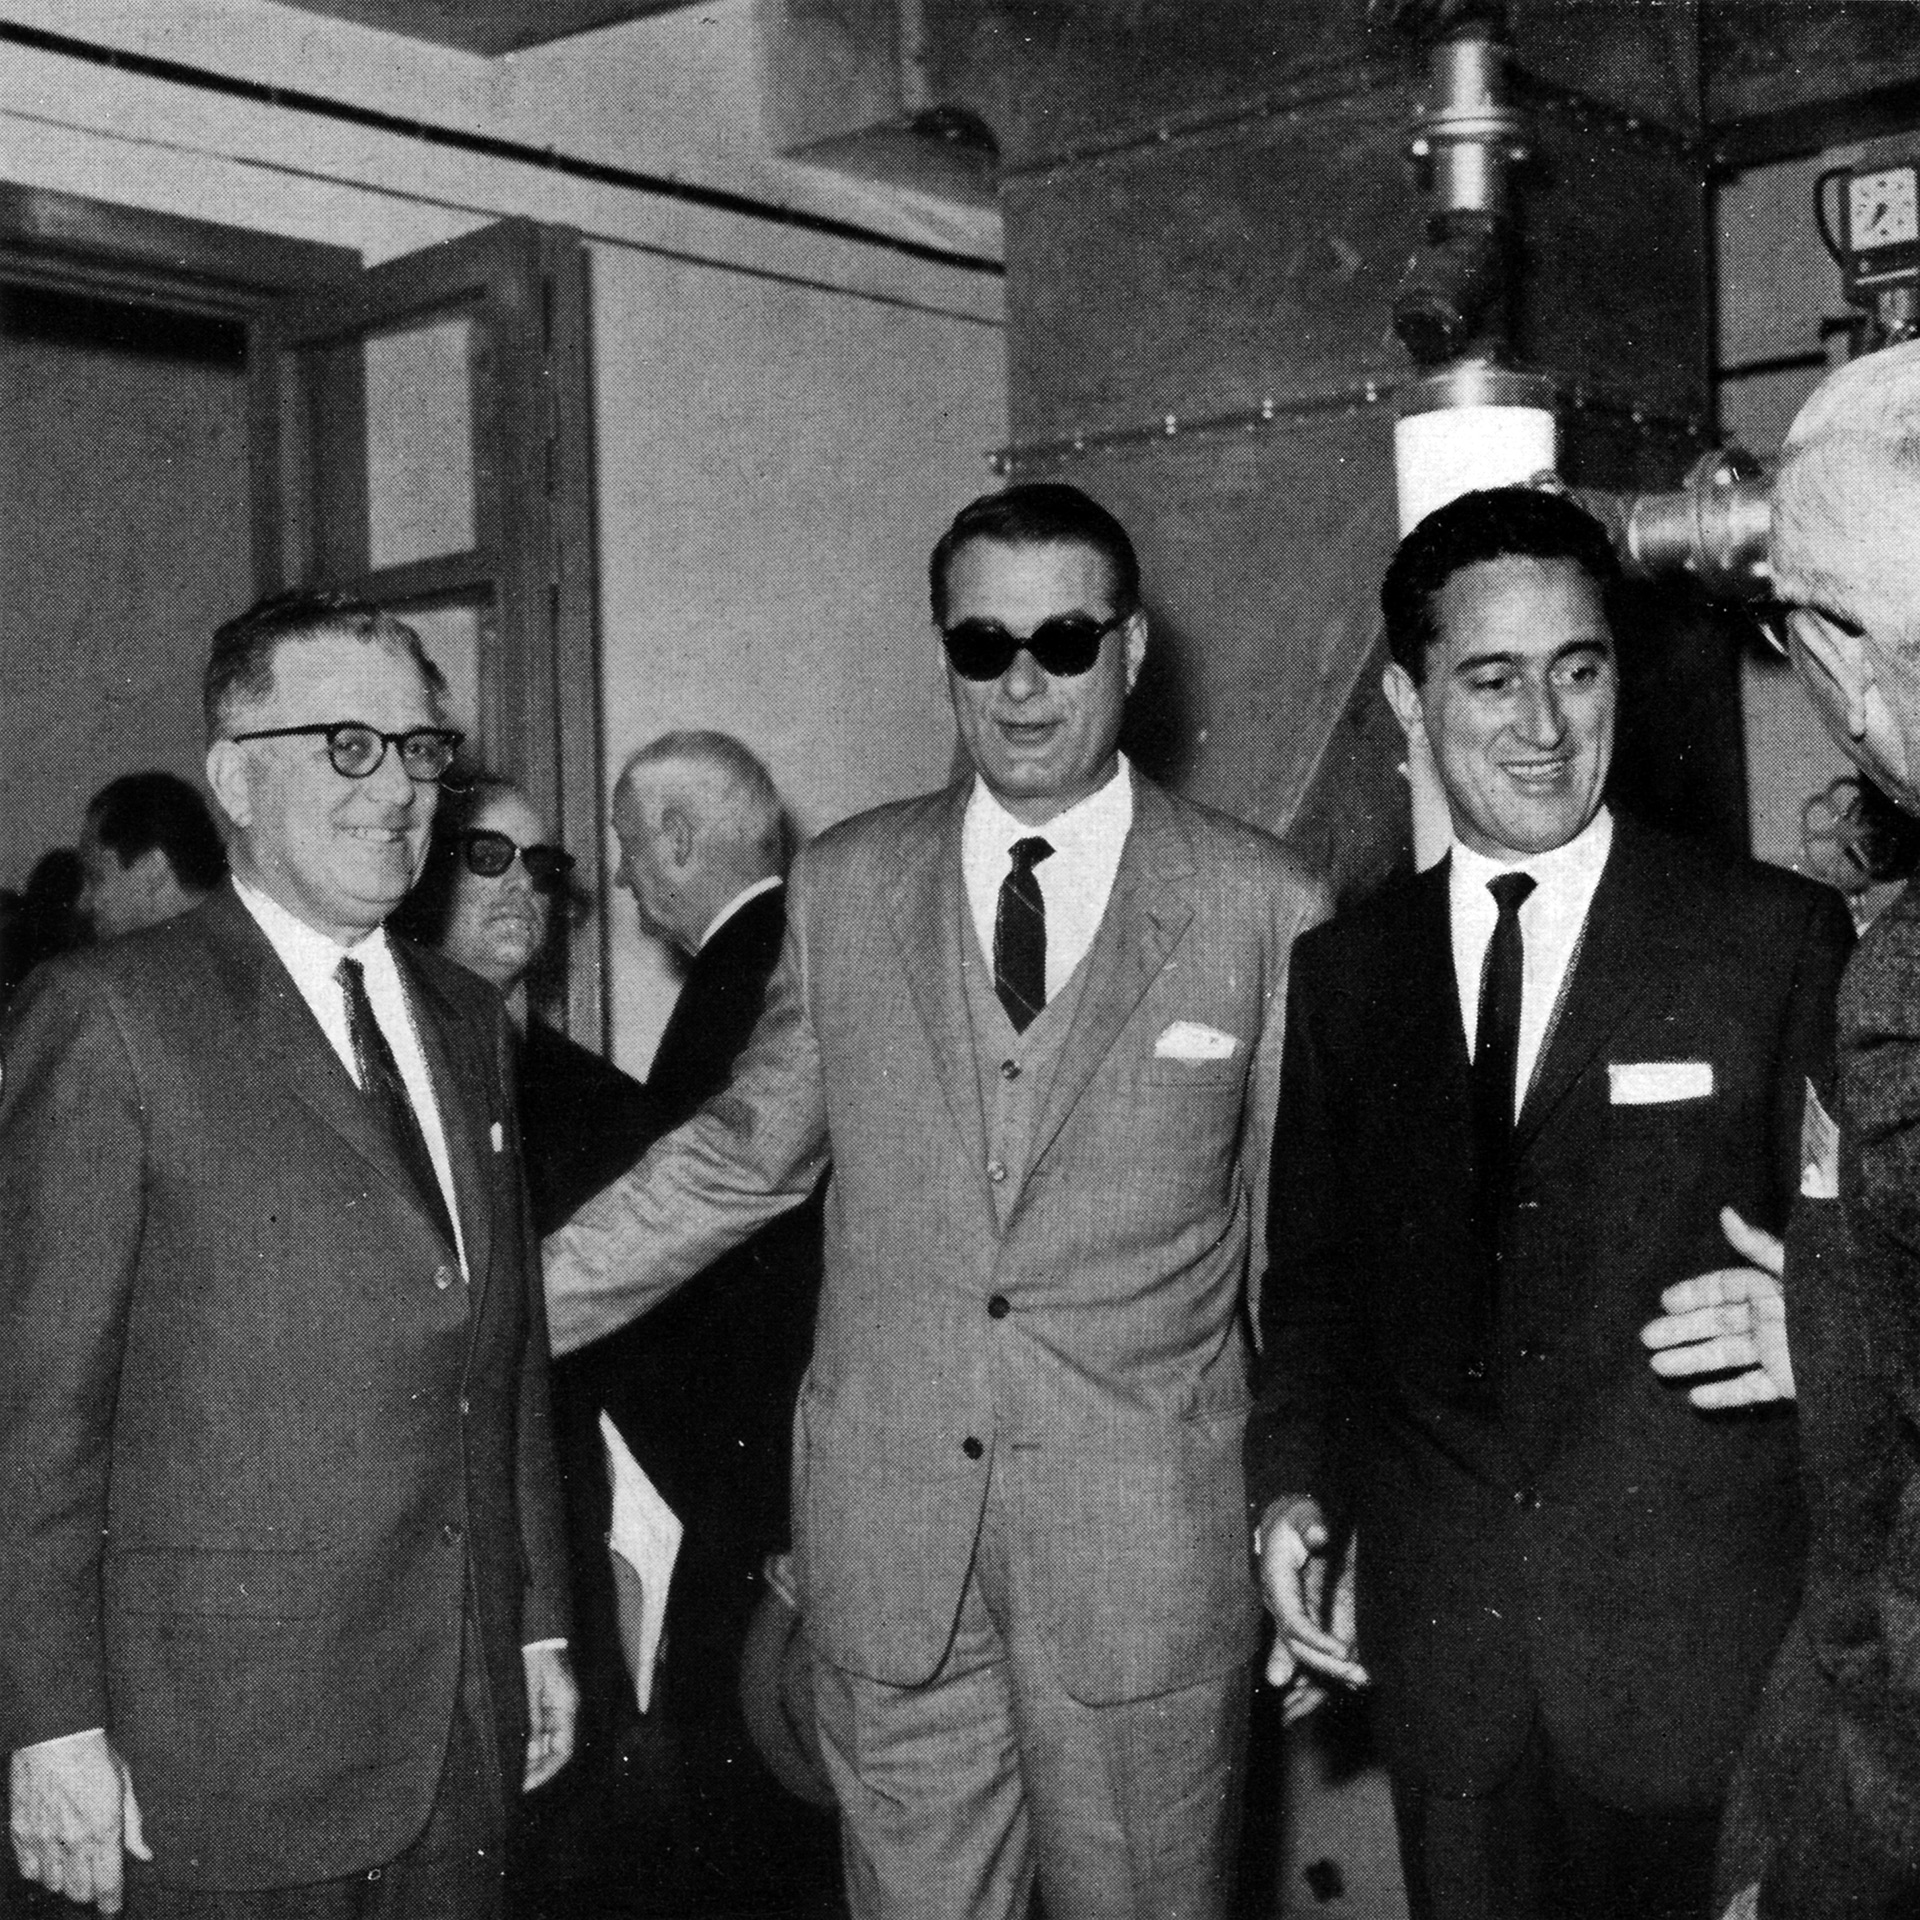 The 3M Corporation purchased Ferrania in 1964.From left: 3M CEO Bert S. Cross with Dr. Paolo Bassignana, Head of R&D and Dr. Guido Polla, both of Ferrania, at the inauguration of the L.R.F. (courtesy  Fondazione 3M )